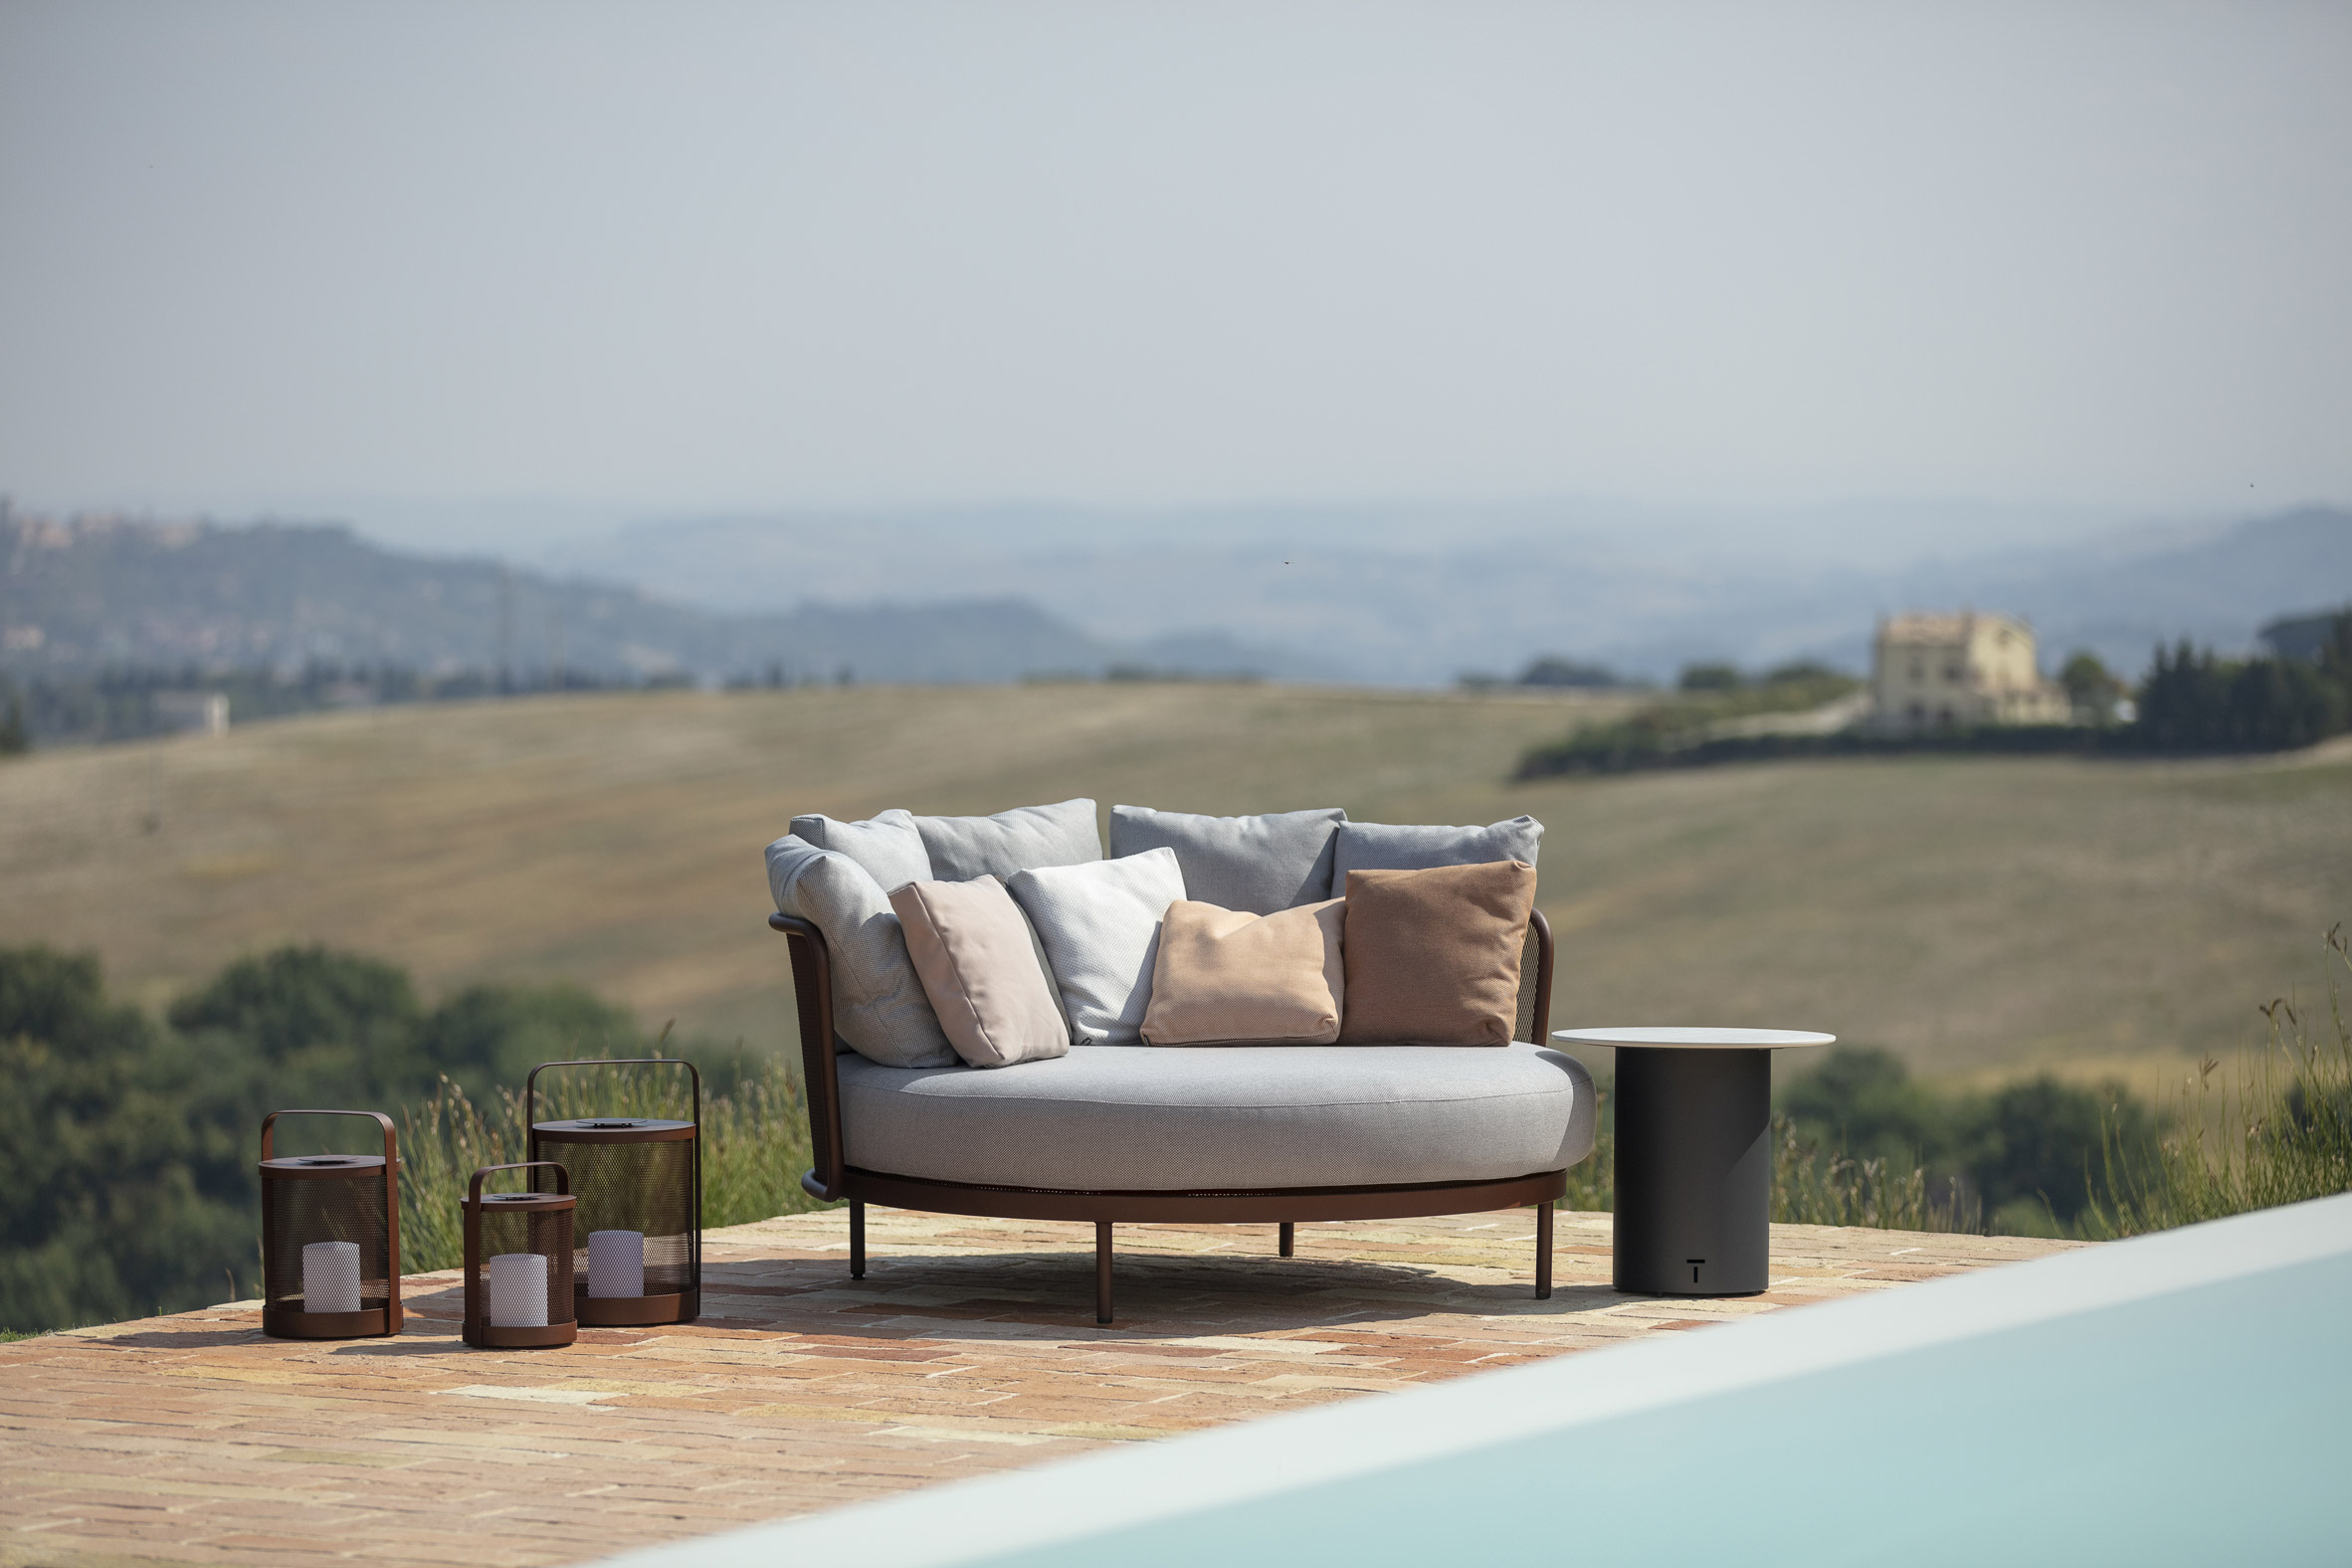 Baza Lounge collection by the pool